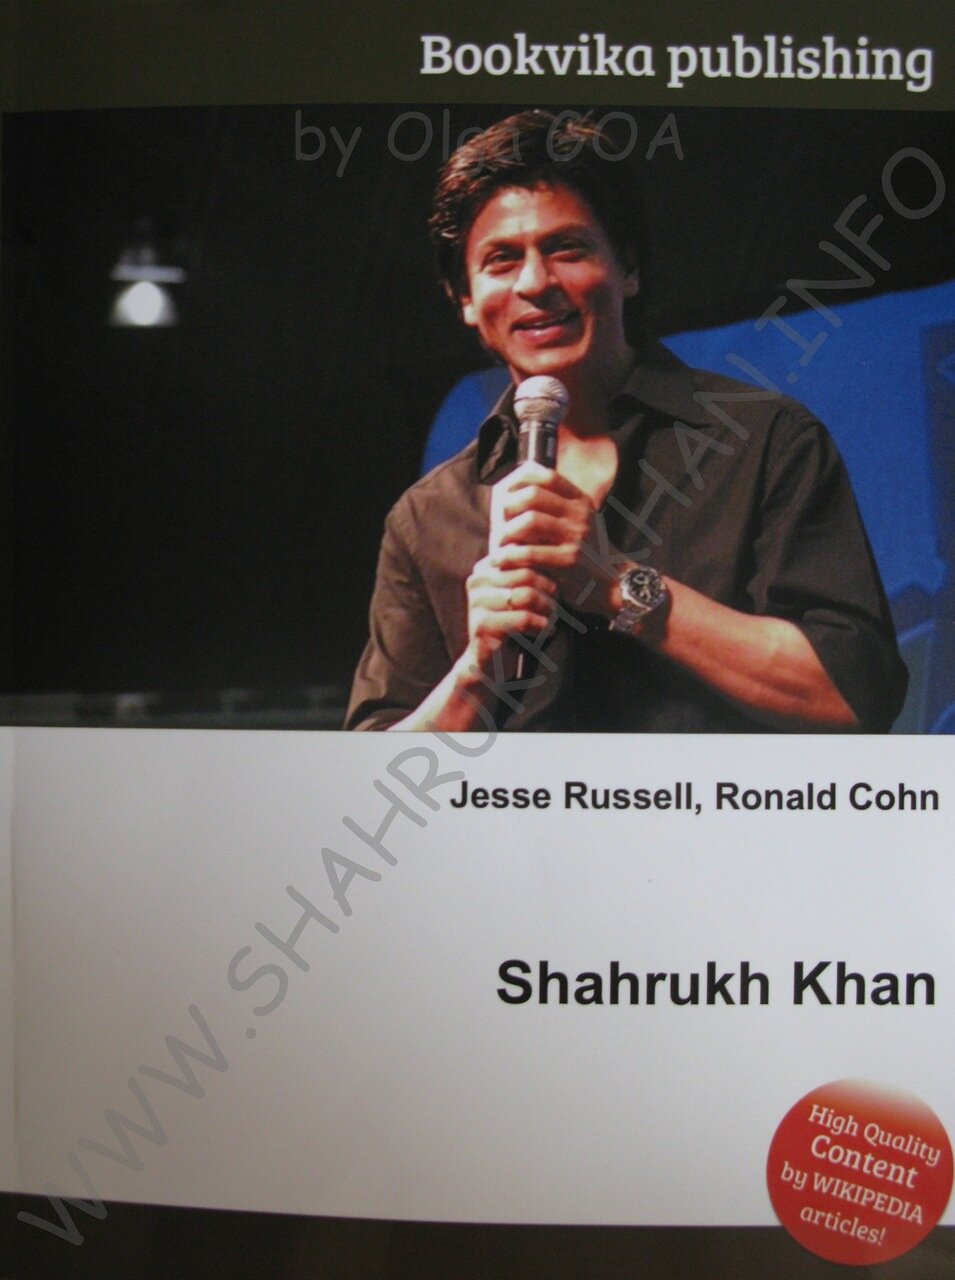 Shahrukh Khan - Book Cover 2012 (2)